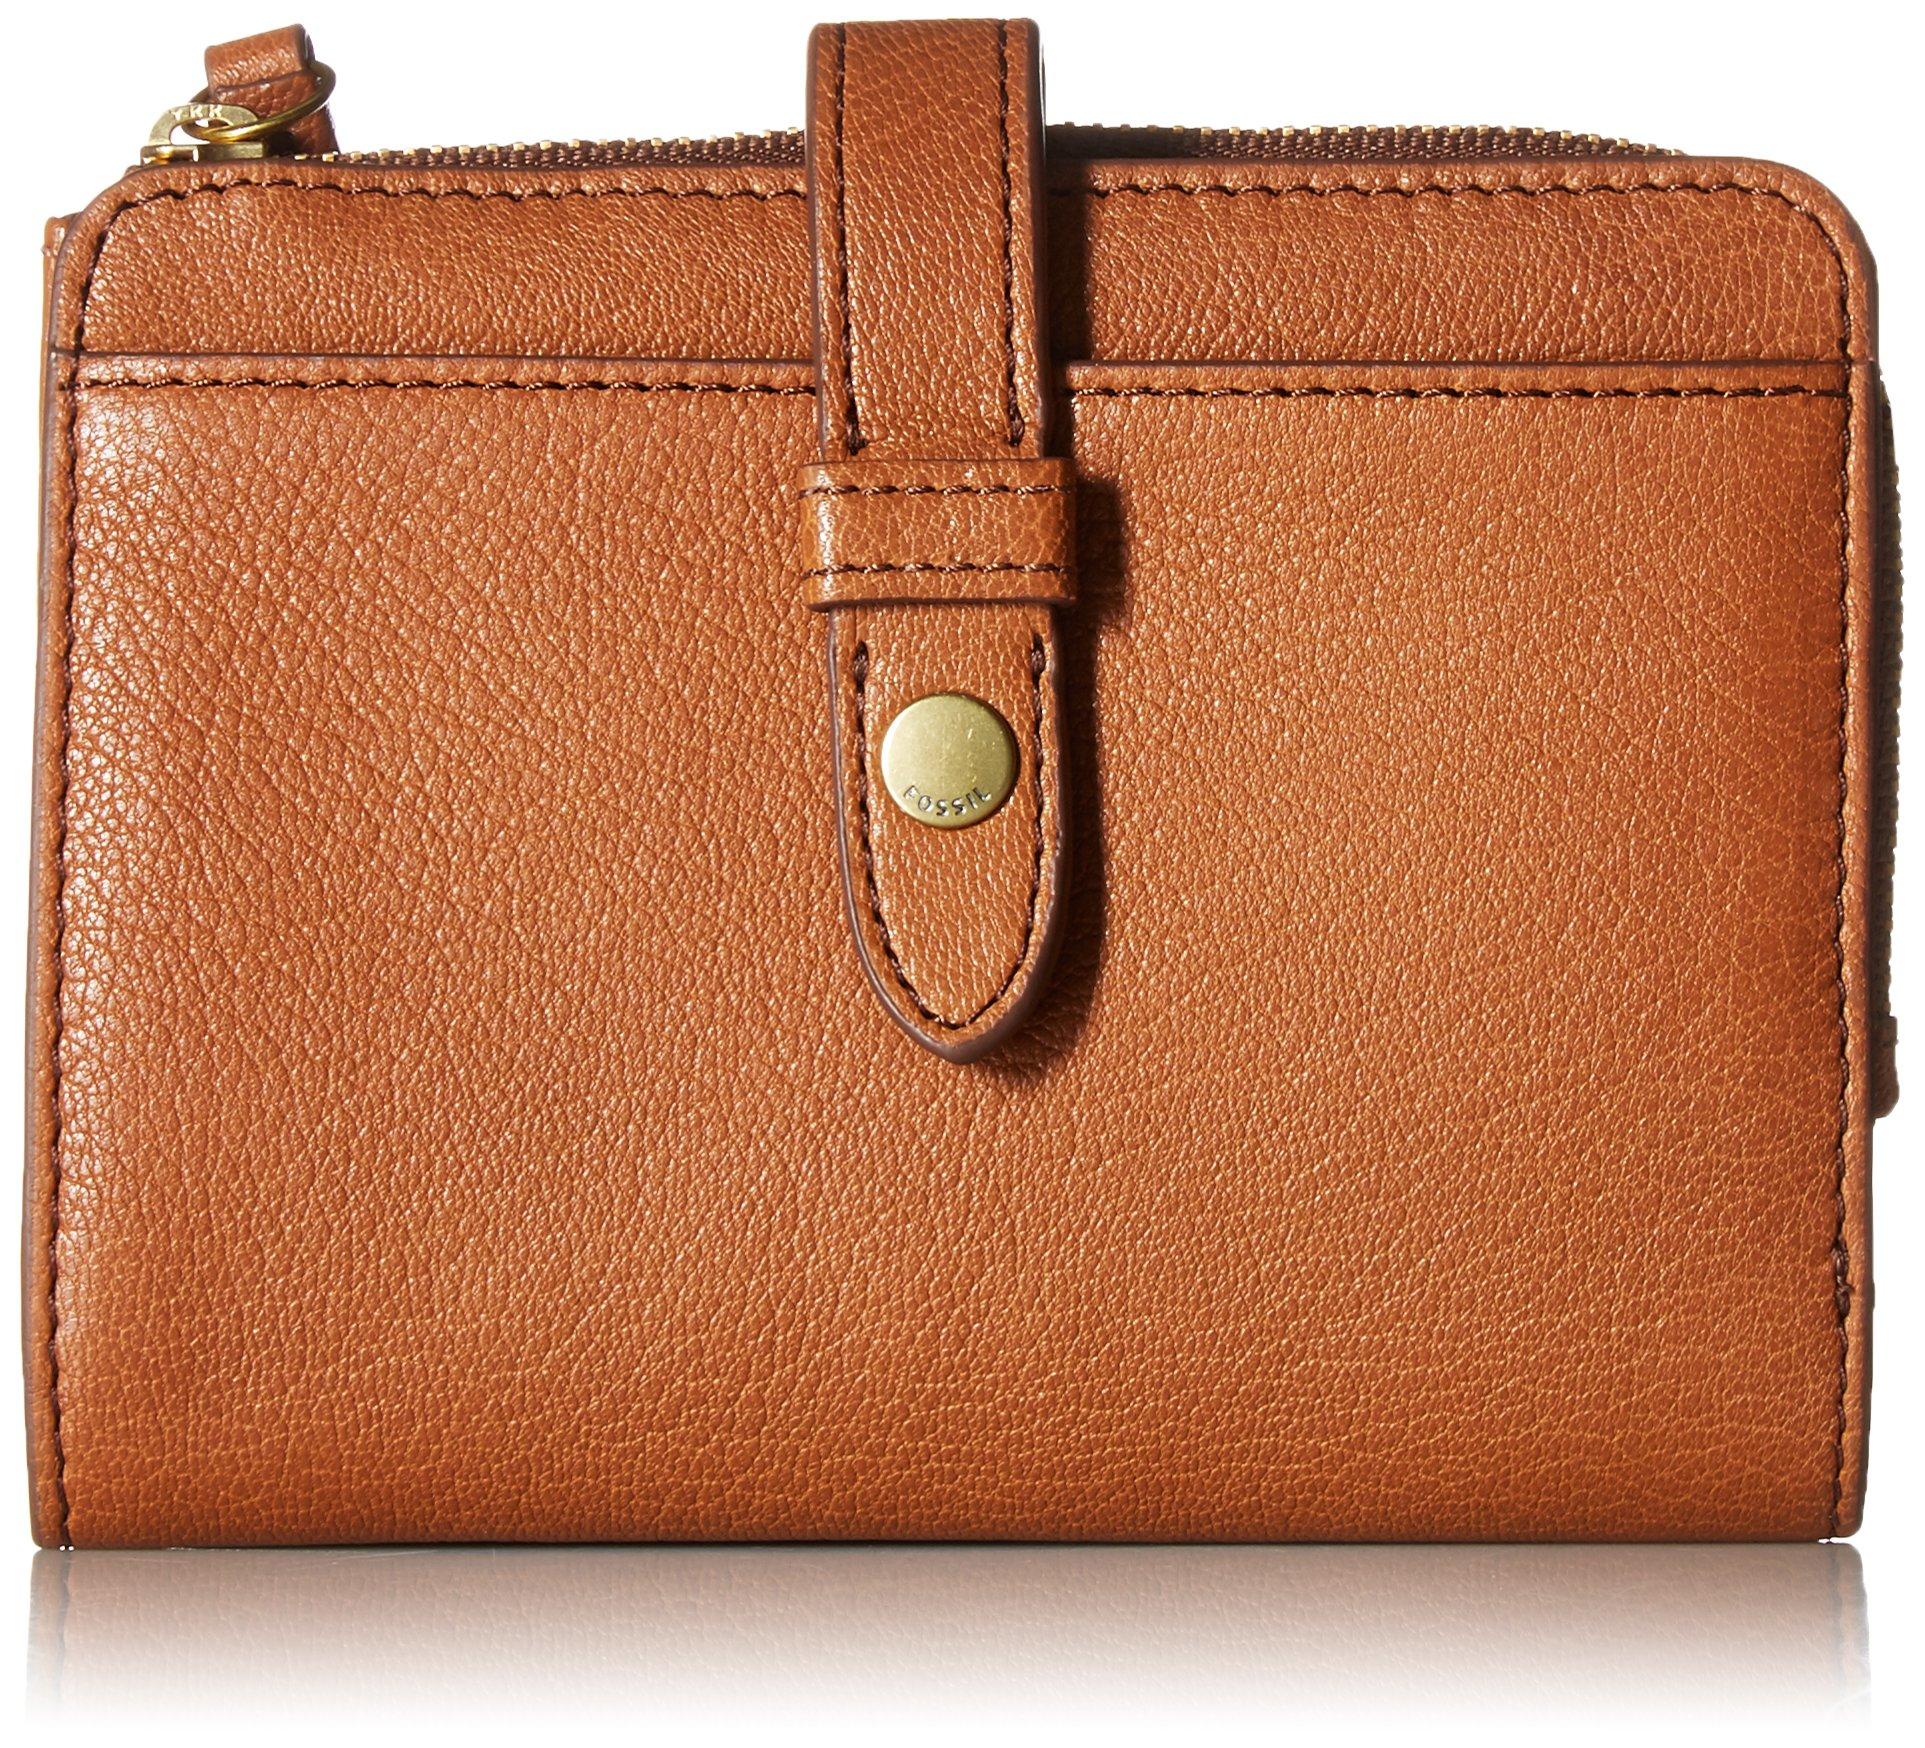 Fossil Fiona Multifunction Wallet, Saddle